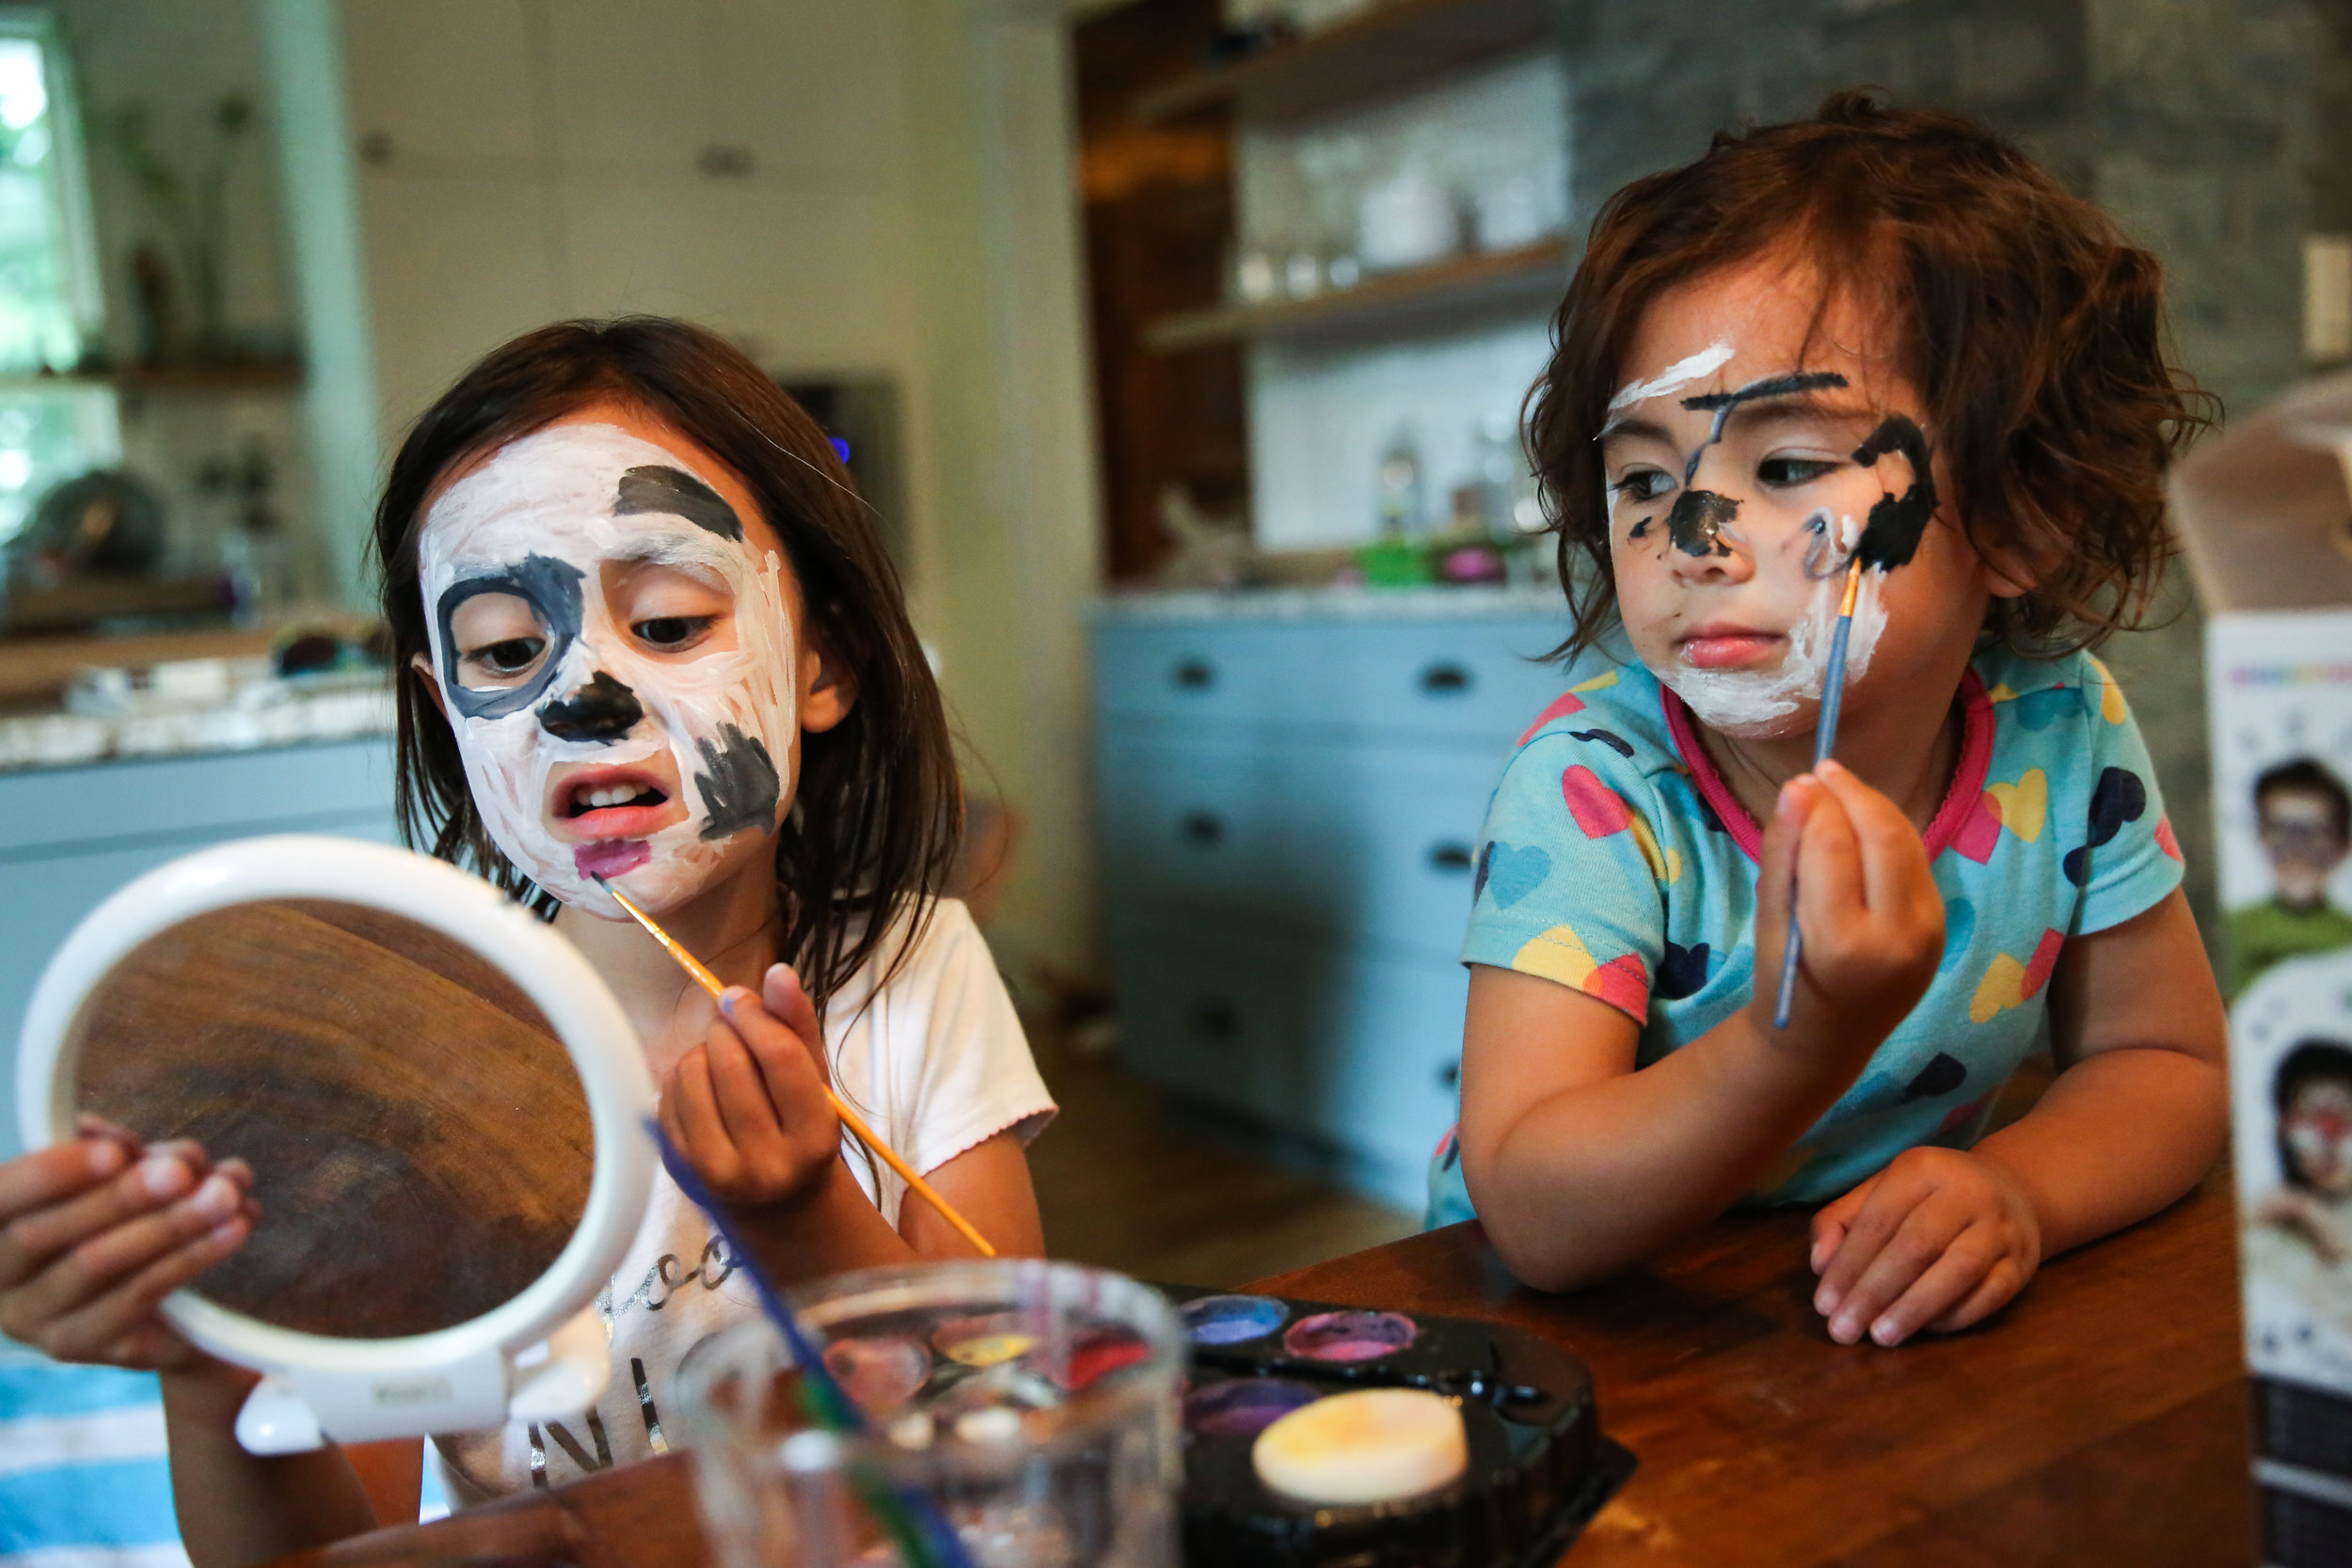 Two kids painting faces at table